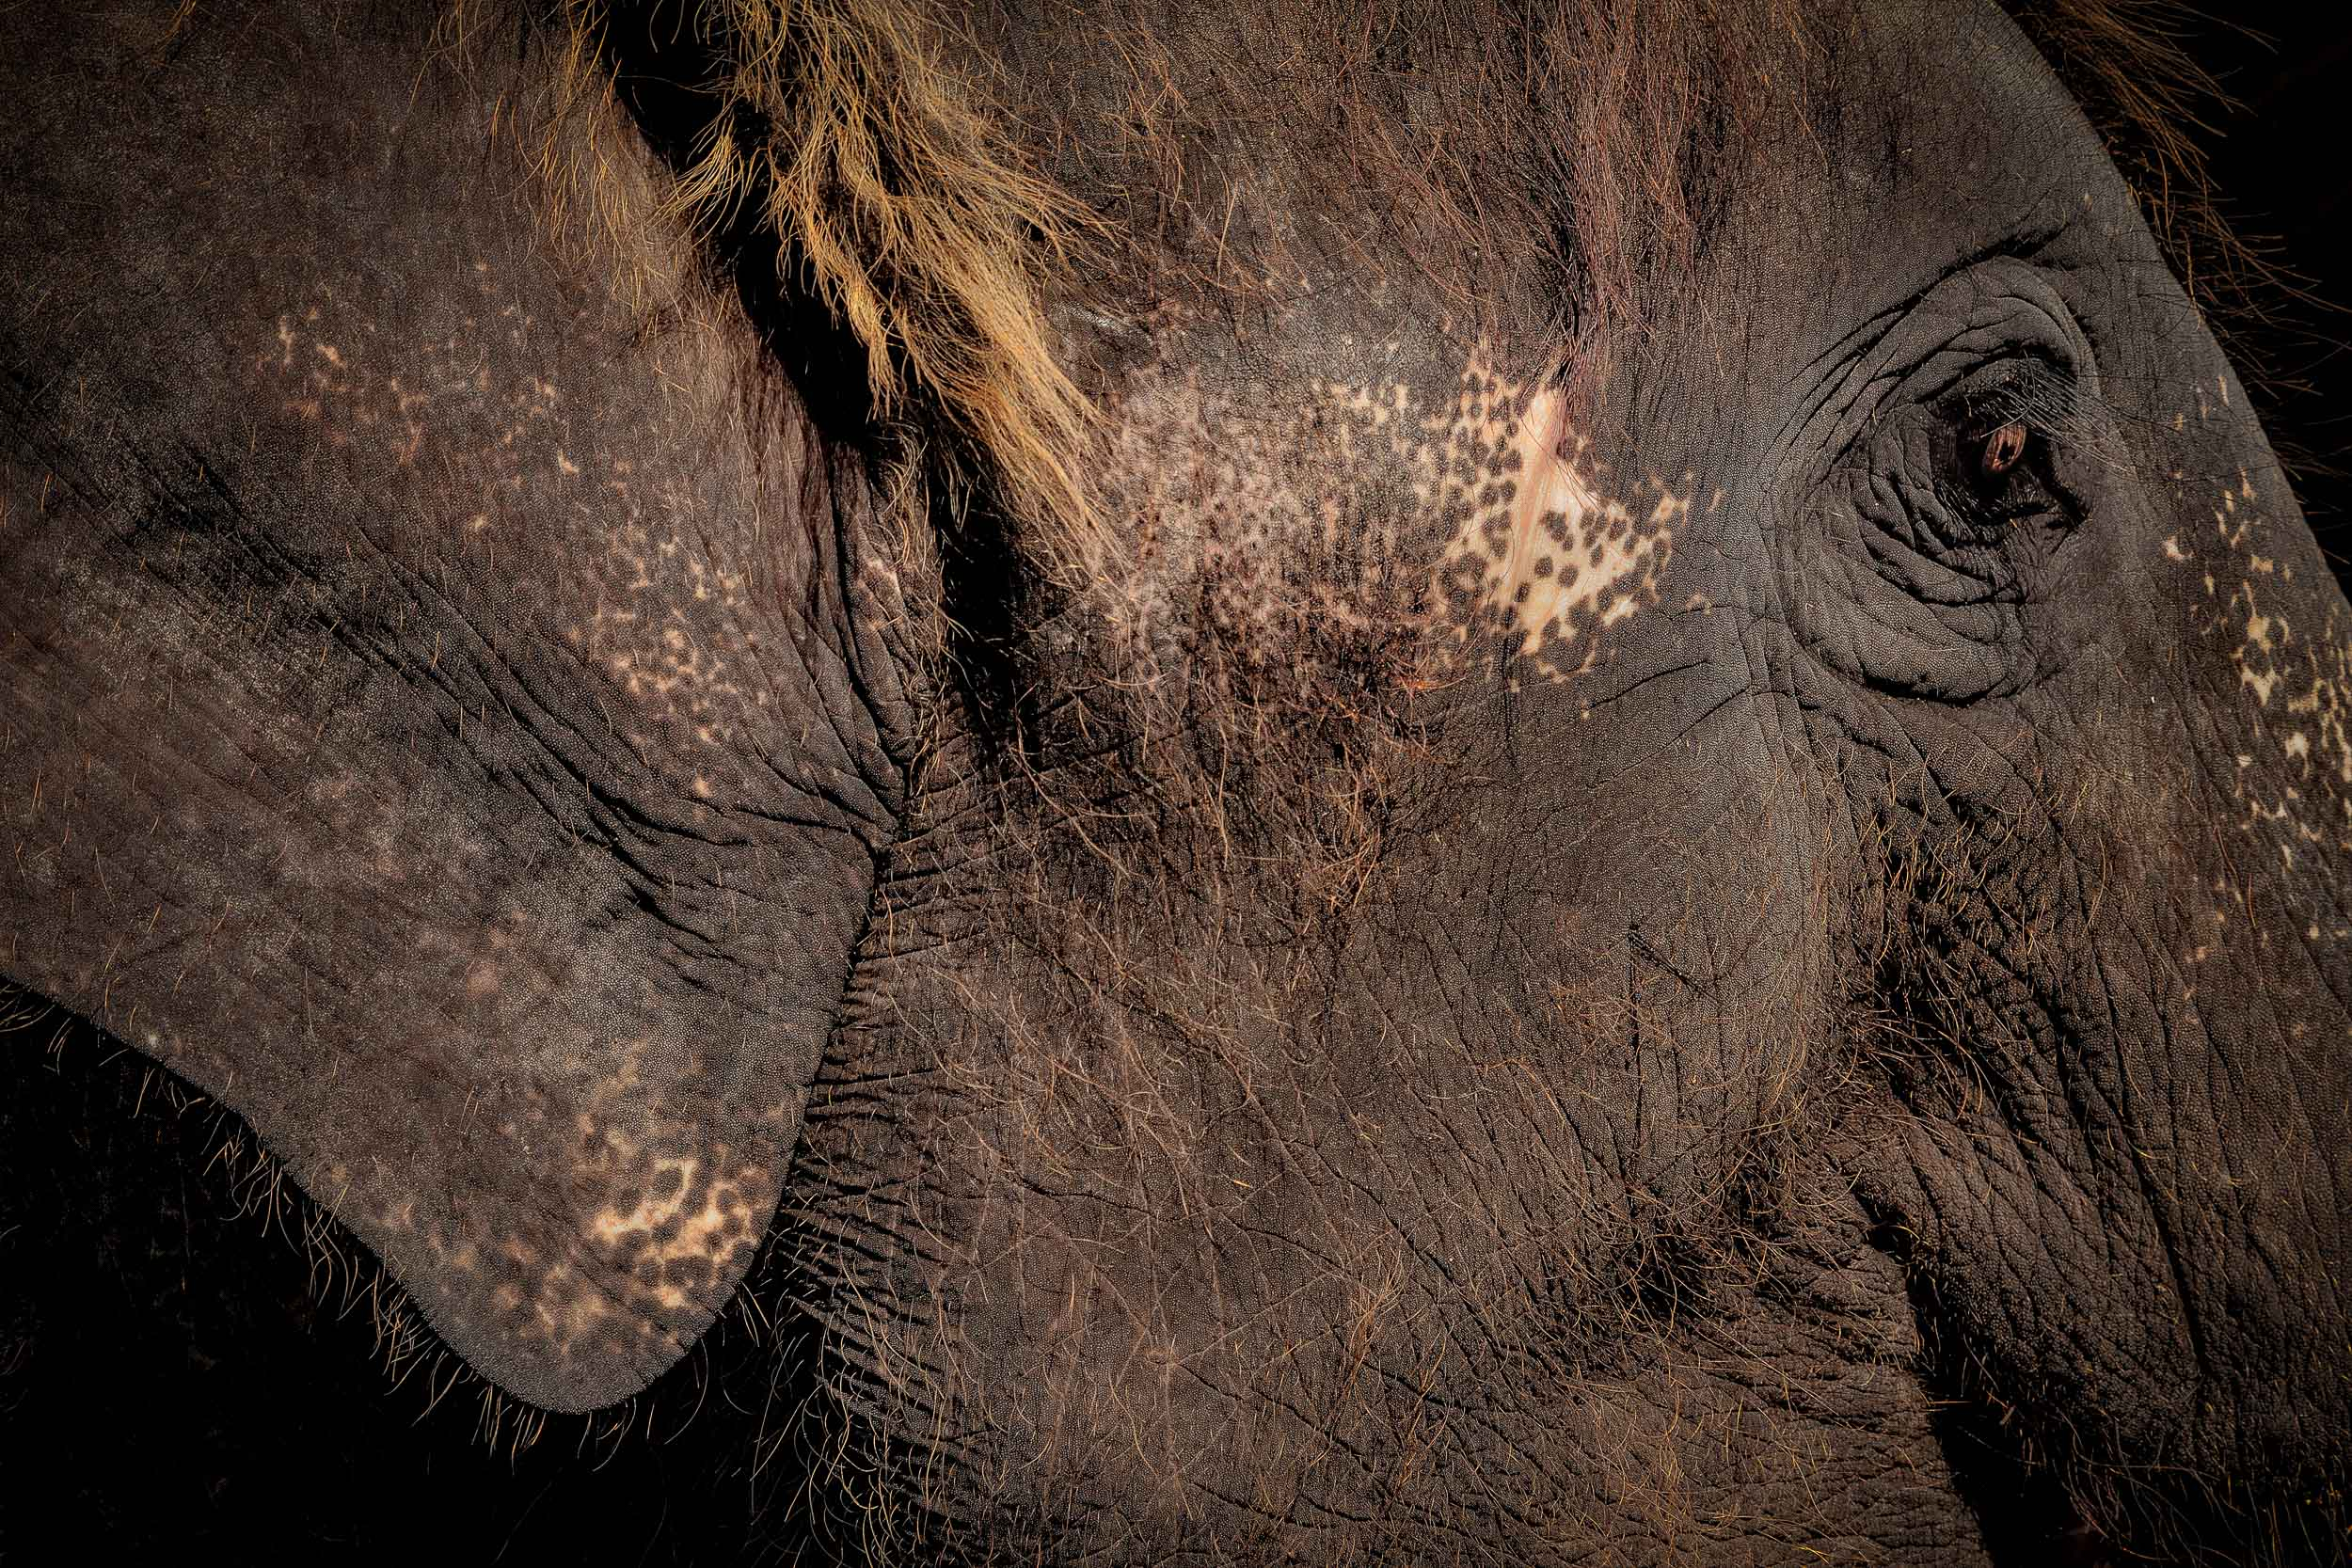 A  close up  image of an  elephant  in  Thailand .